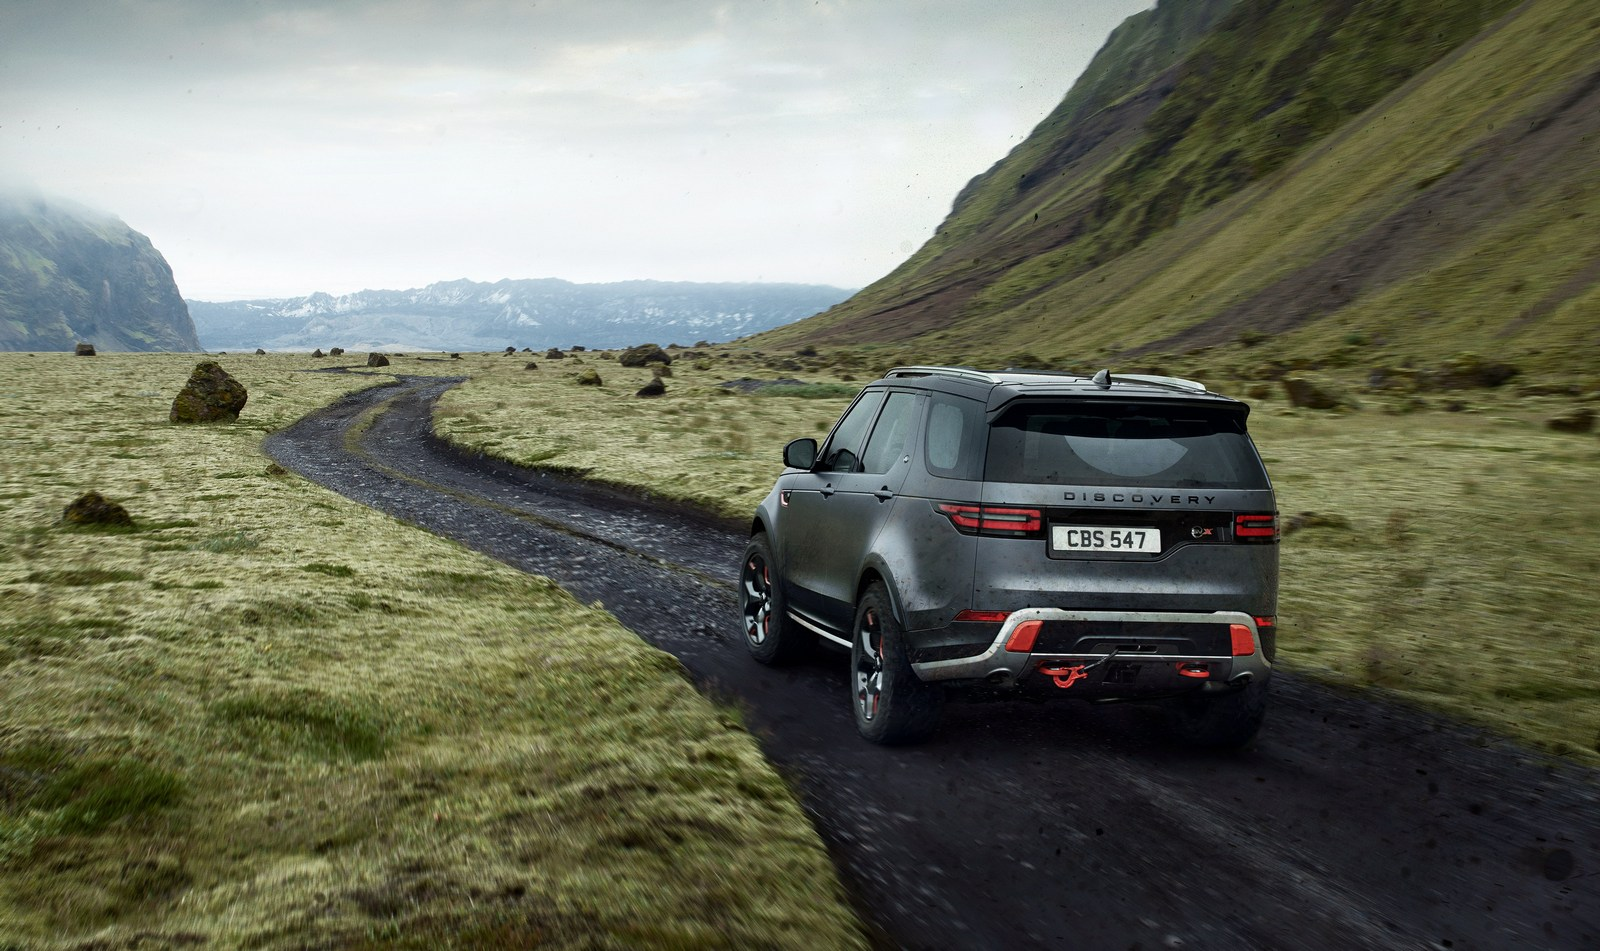 Land_Rover_Discovery_SVX_02